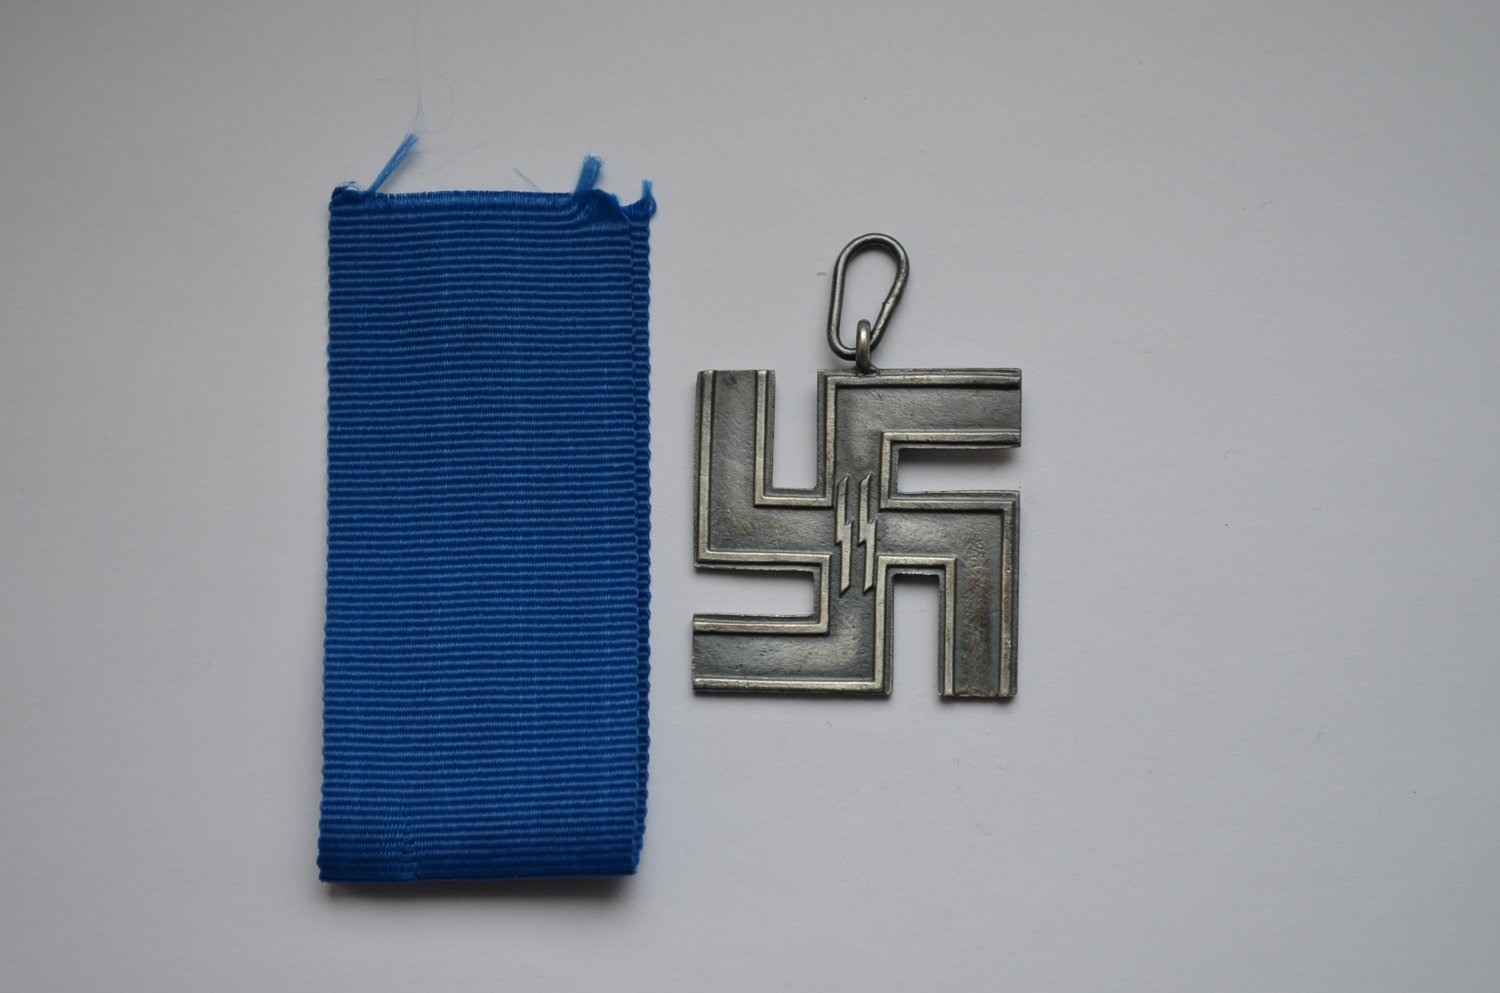 WWII GERMAN MEDAL LONG SERVICE AWARDS OF THE SS WAFFEN SS 12 YEARS